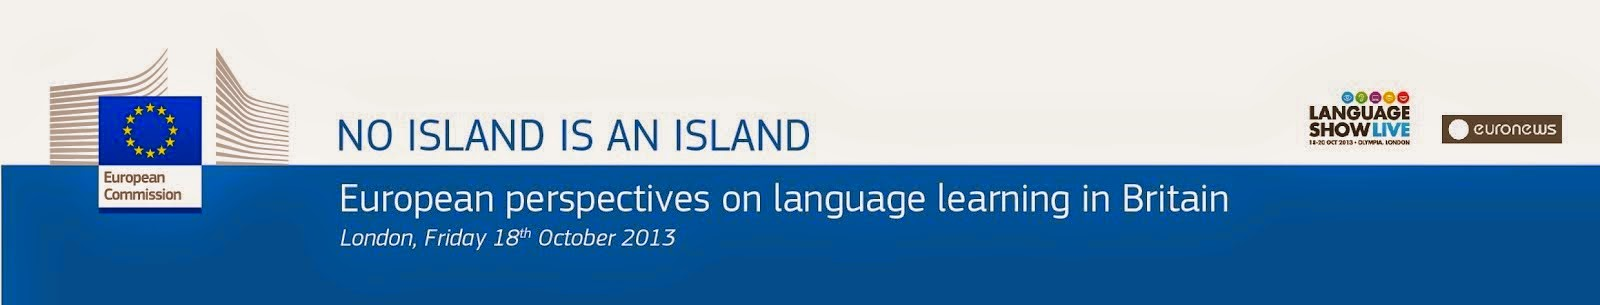 European perspectives on language learning in Britain.